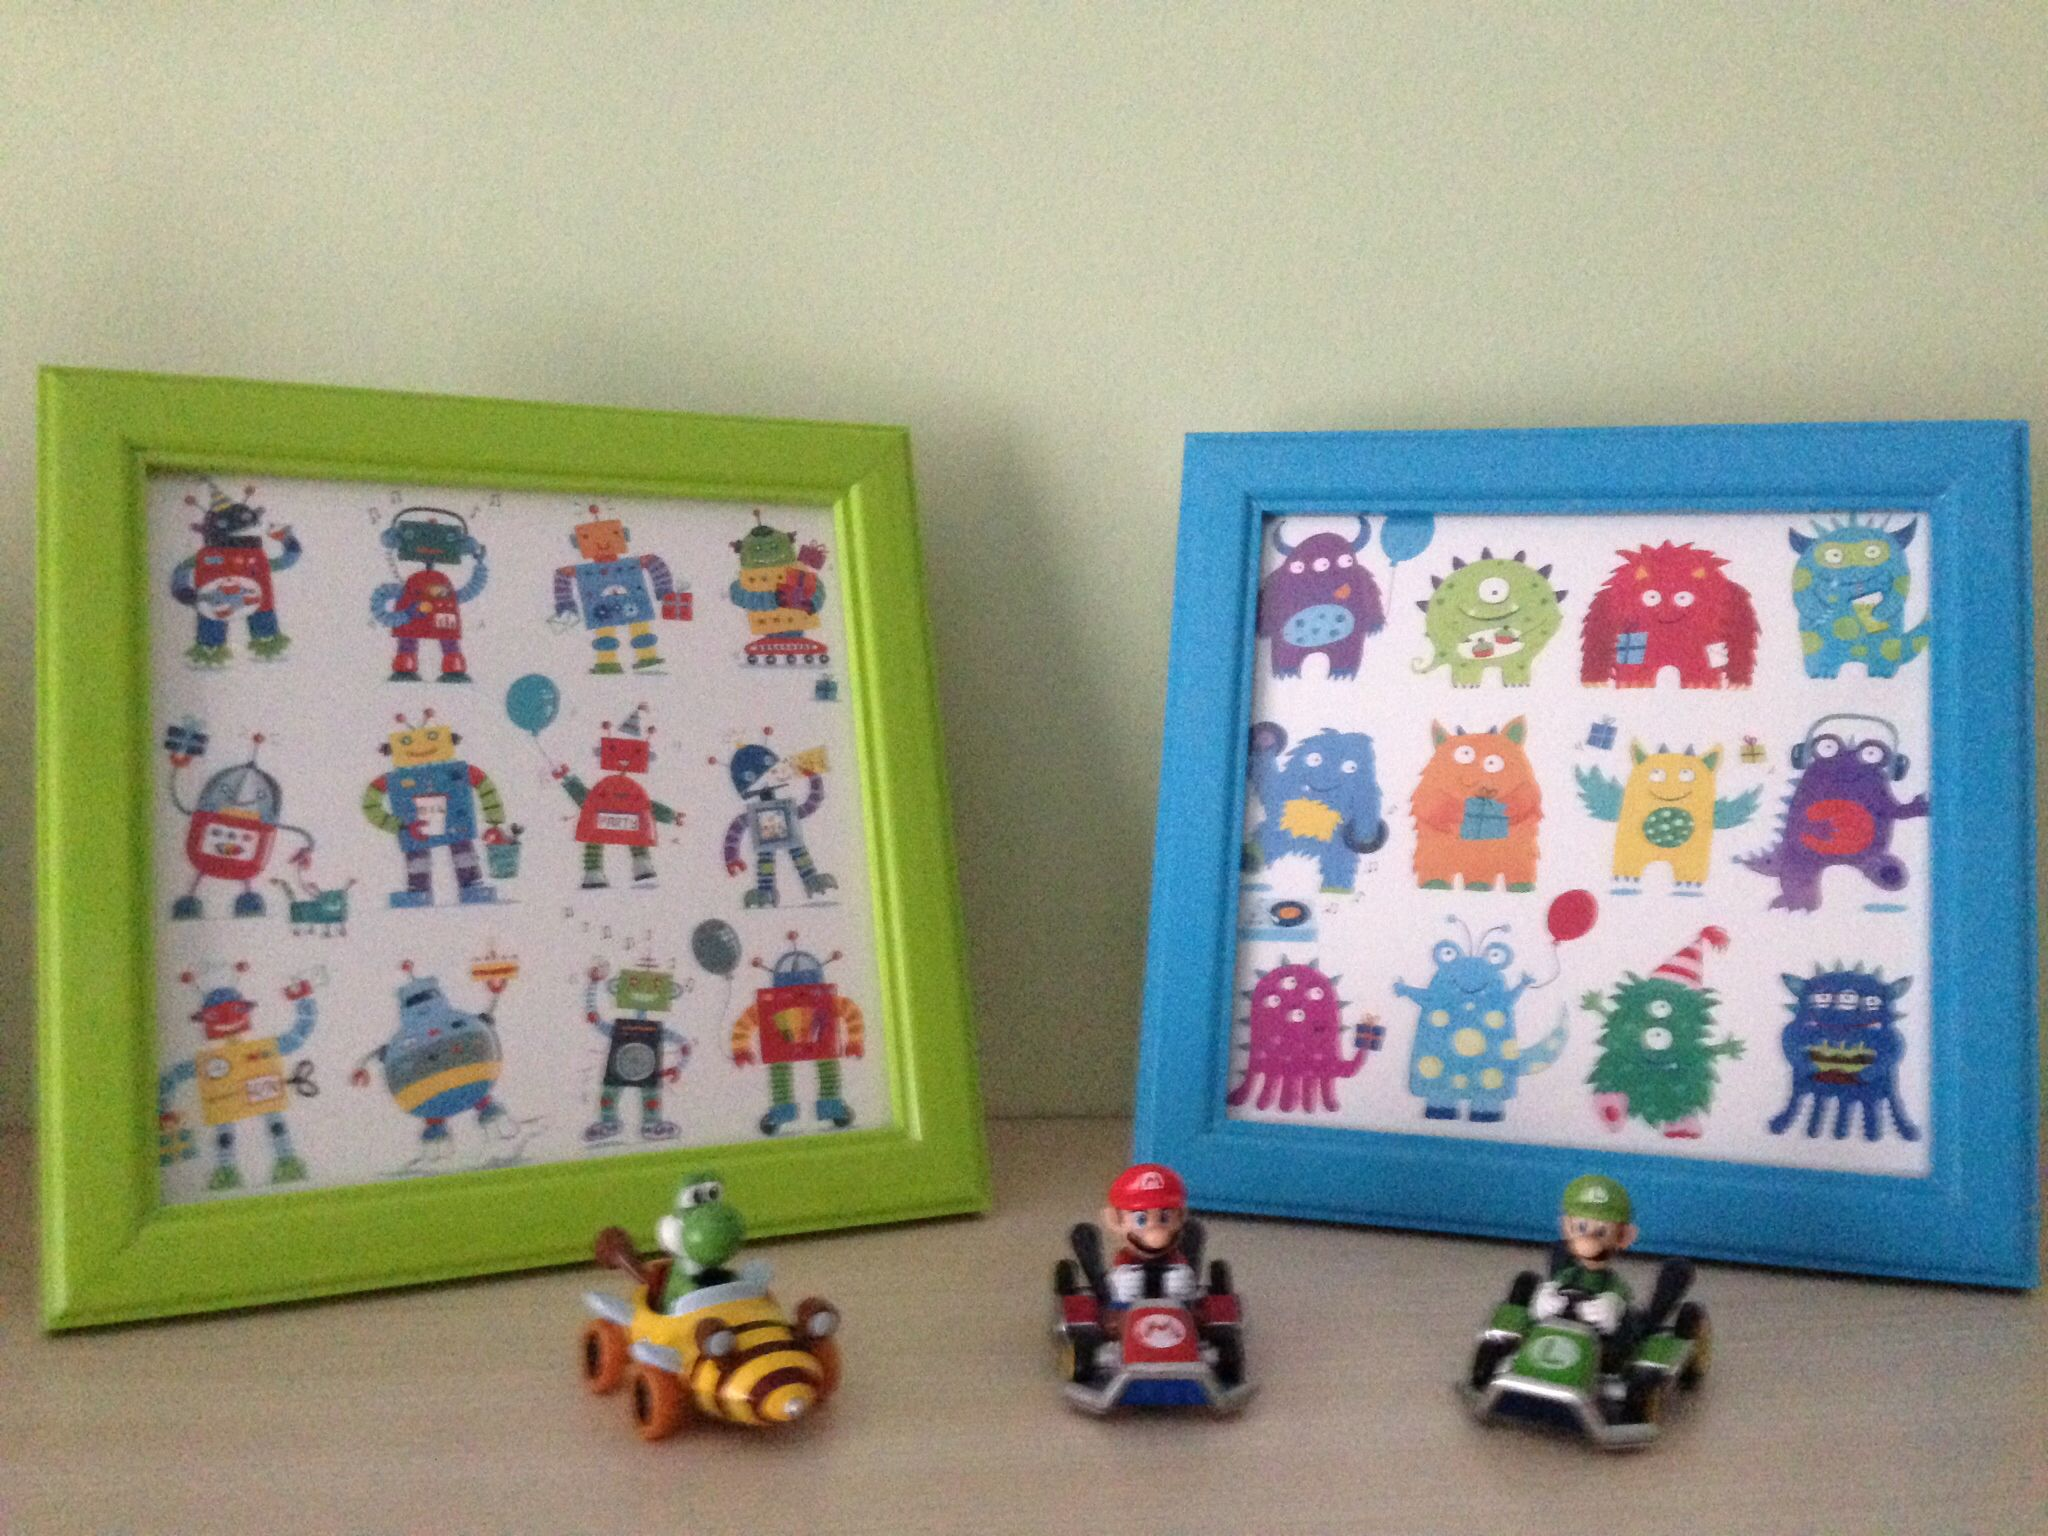 Greetings Cards Look Good In Frames For Kids Rooms These Are From